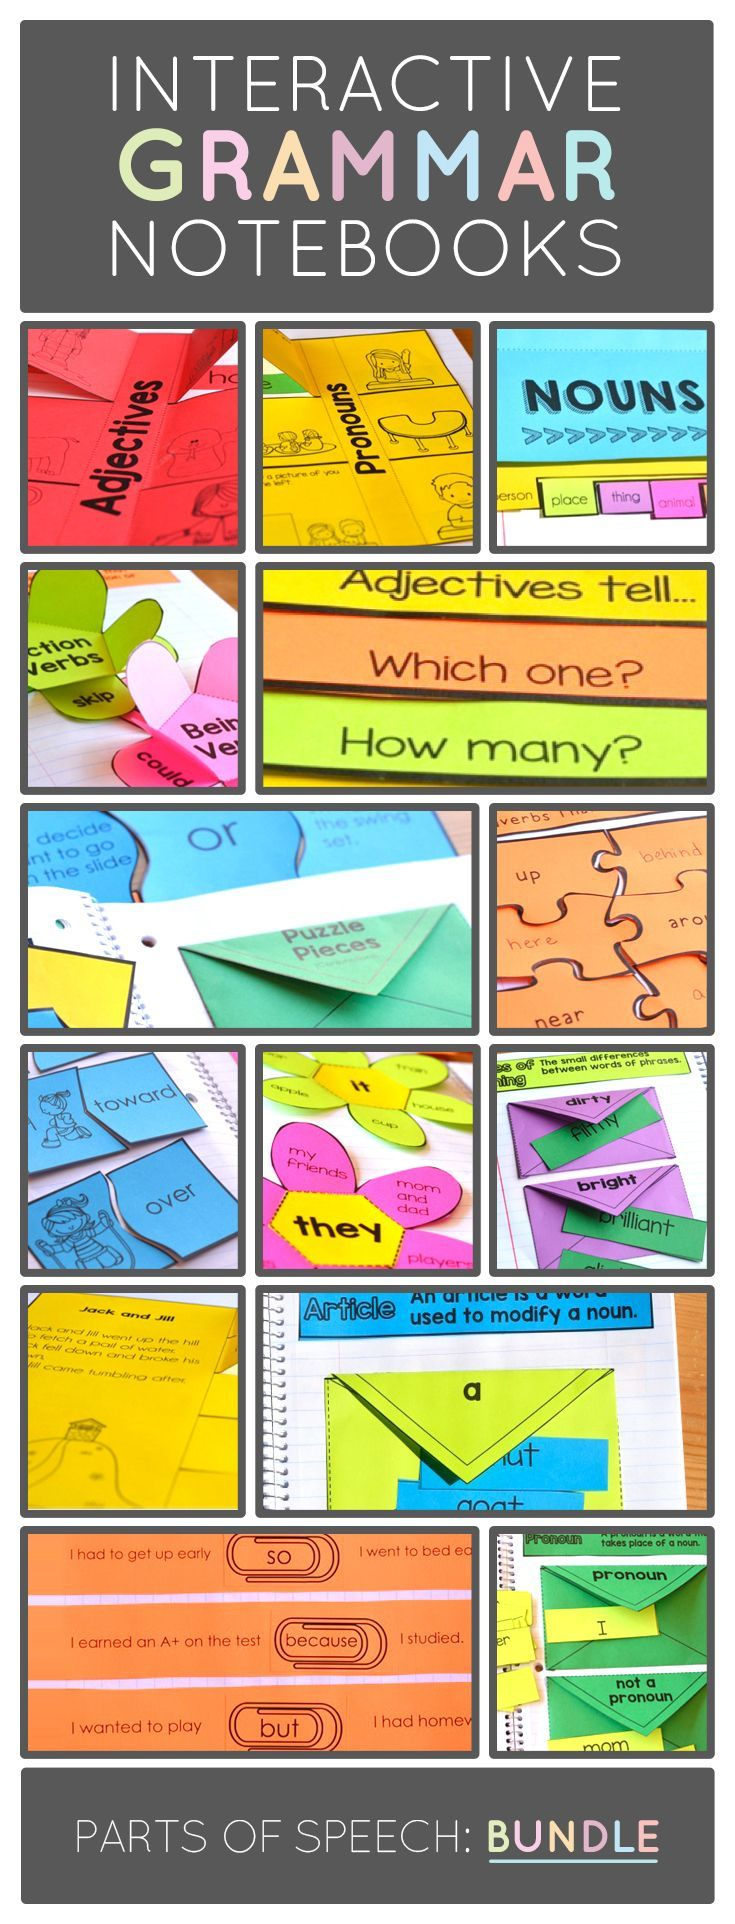 Grammar and Parts of Speech Tips and Interactive Grammar Notebook Resource for Kindergarten, 1st, and 2nd Grade Teachers and Students.  Includes nouns, verbs, adjectives, adverbs, conjunctions, pronouns, articles, and prepositions.